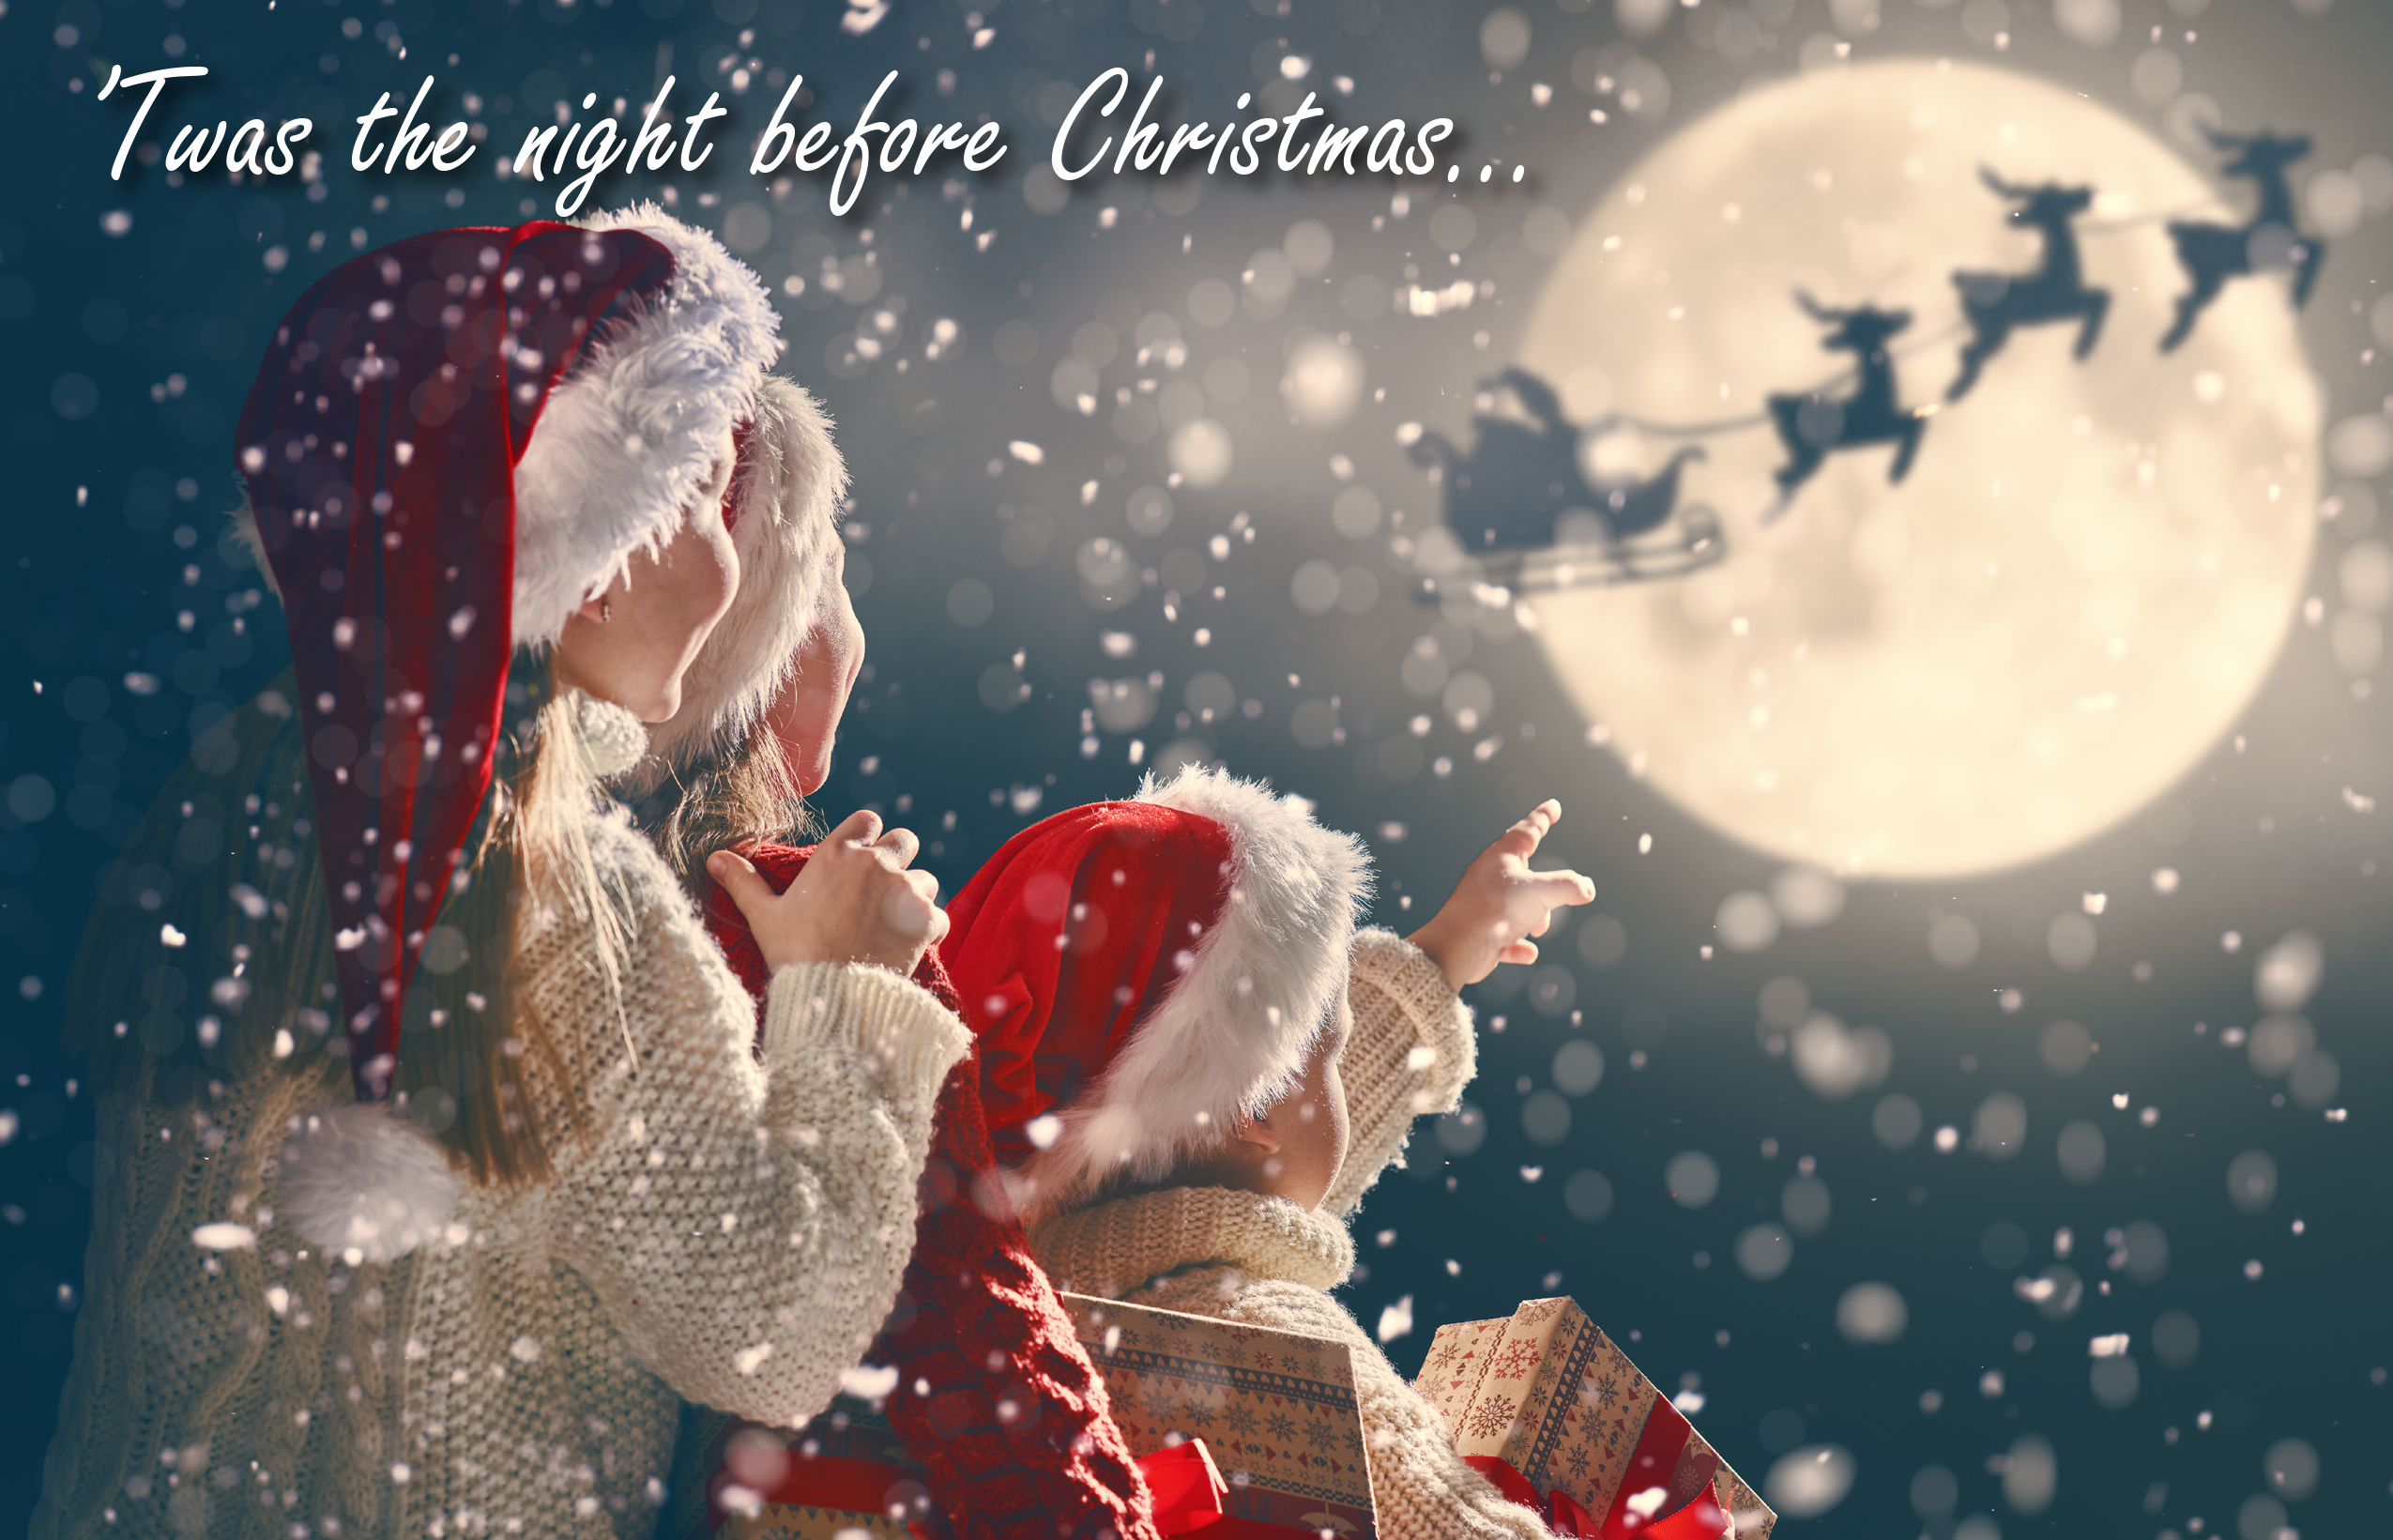 2019 'Twas the Night Before Christmas Greeting Card